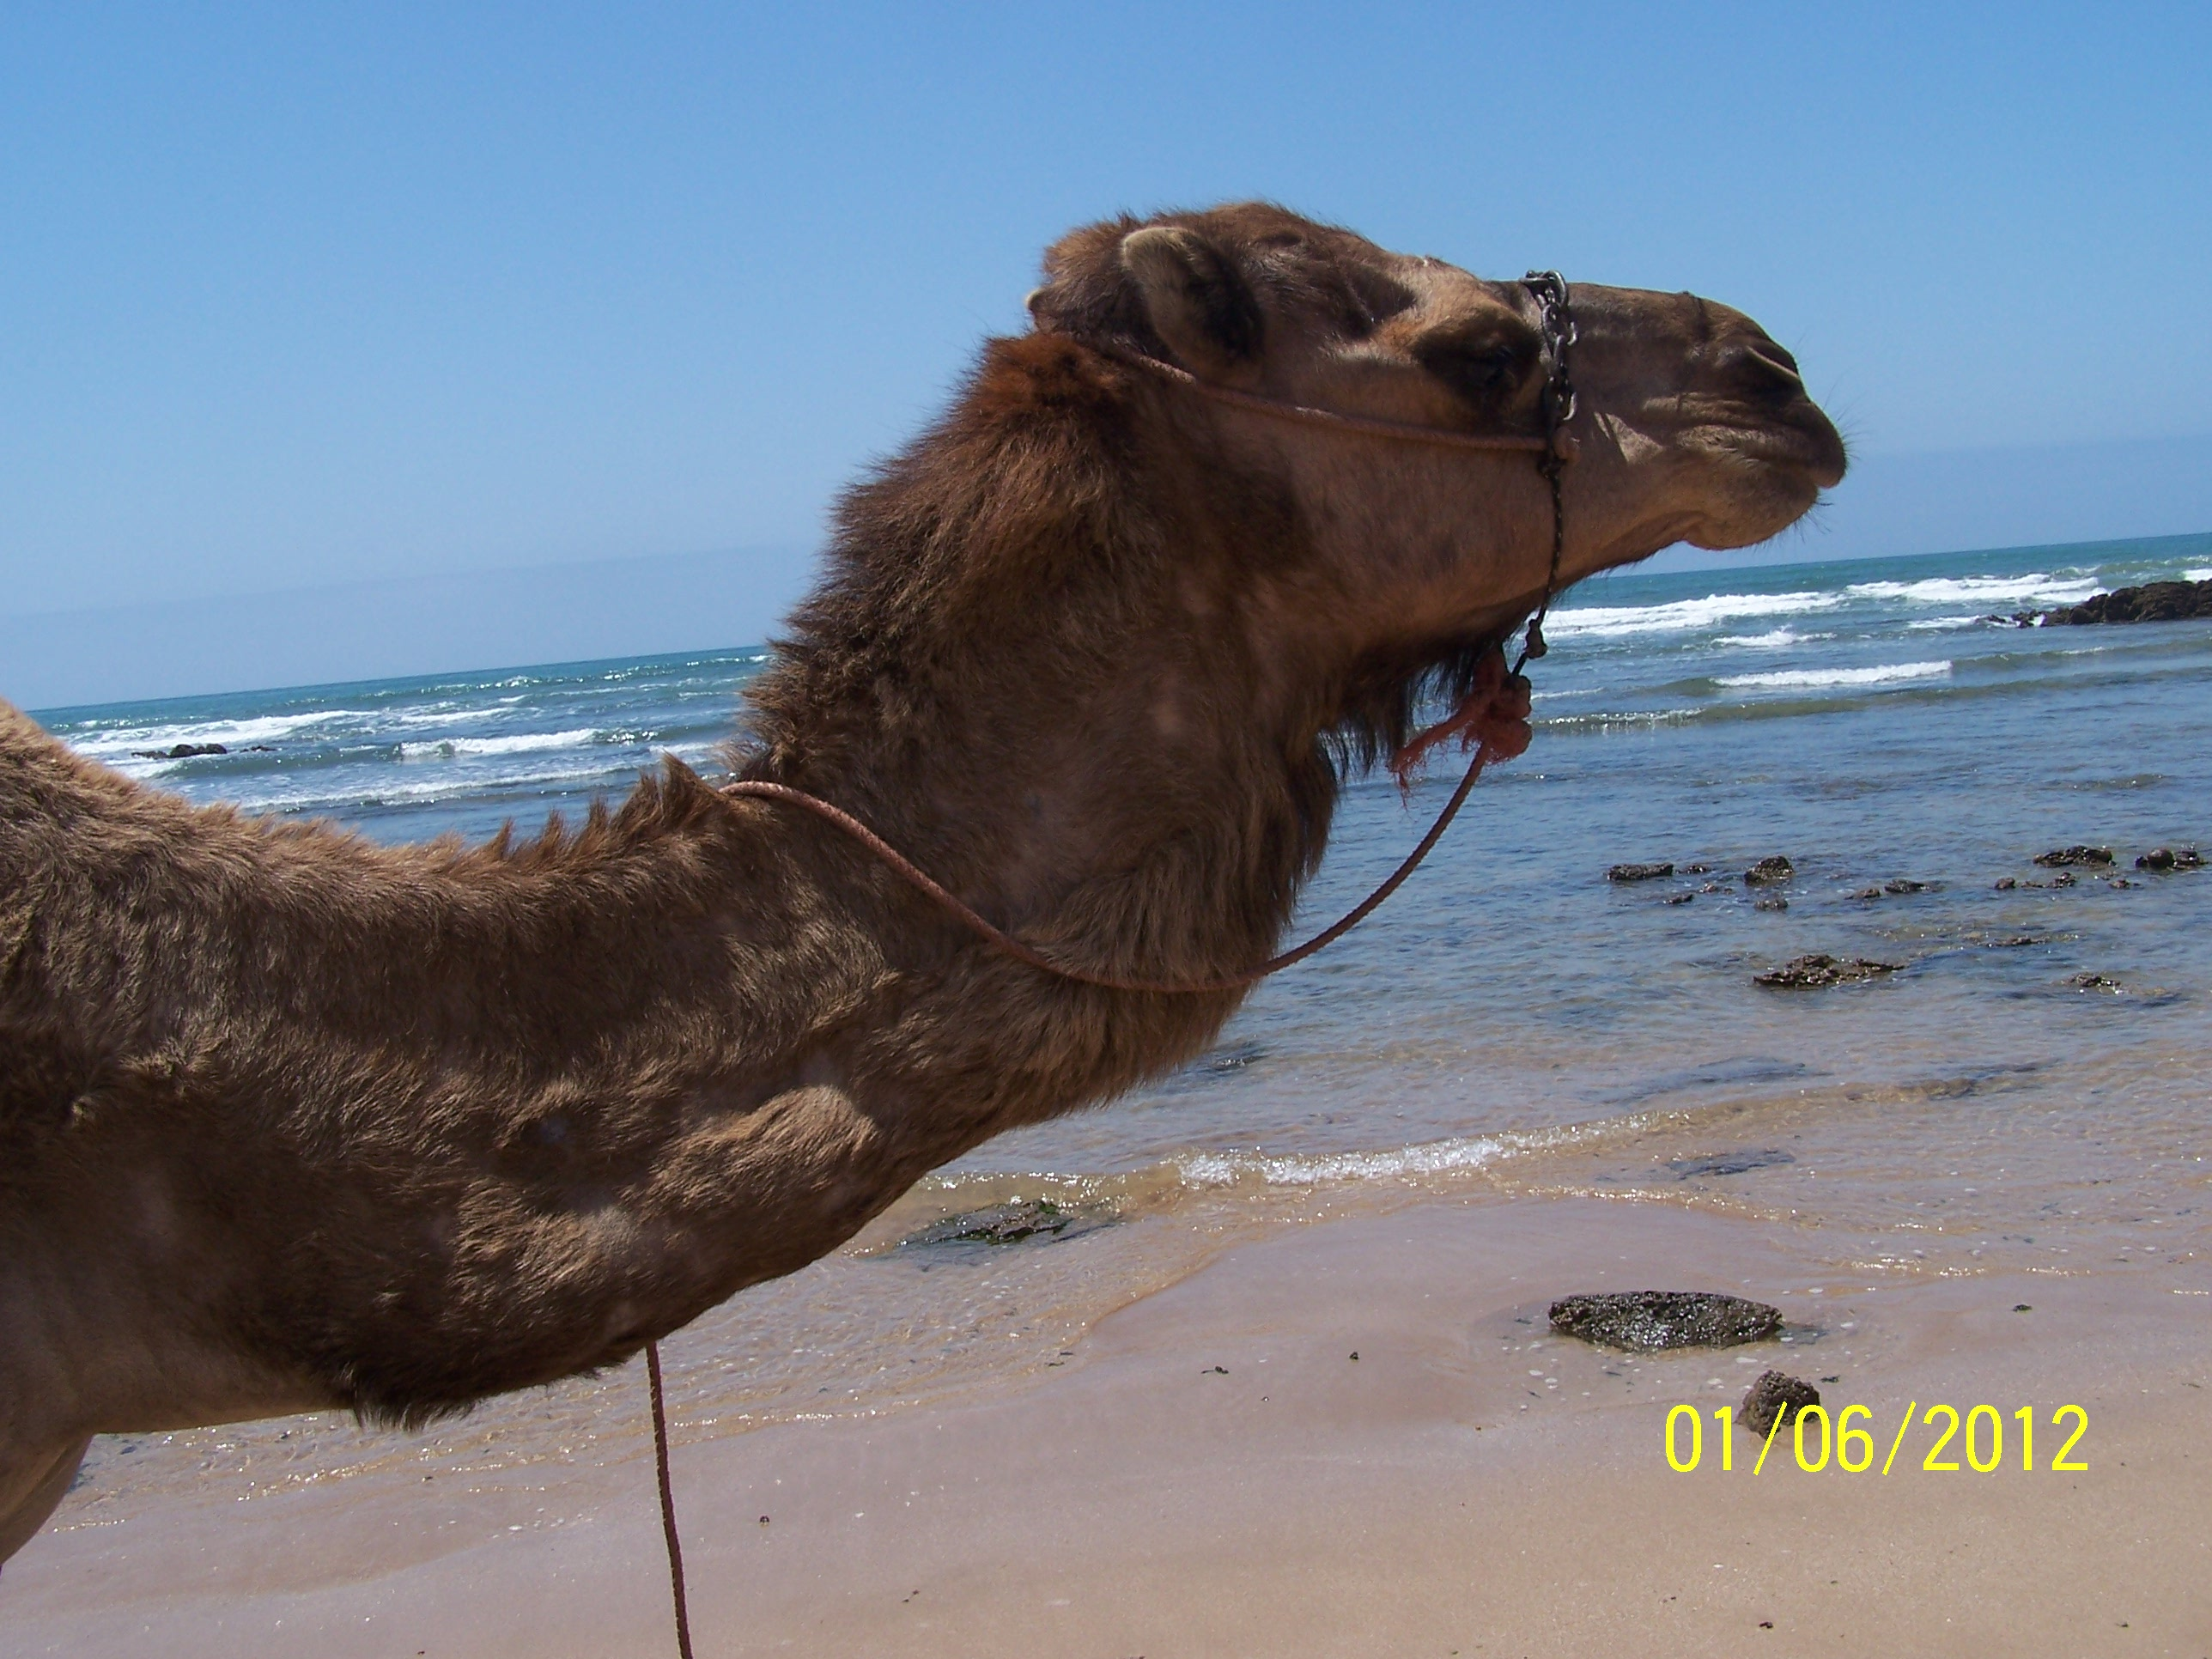 camel riding in the beach